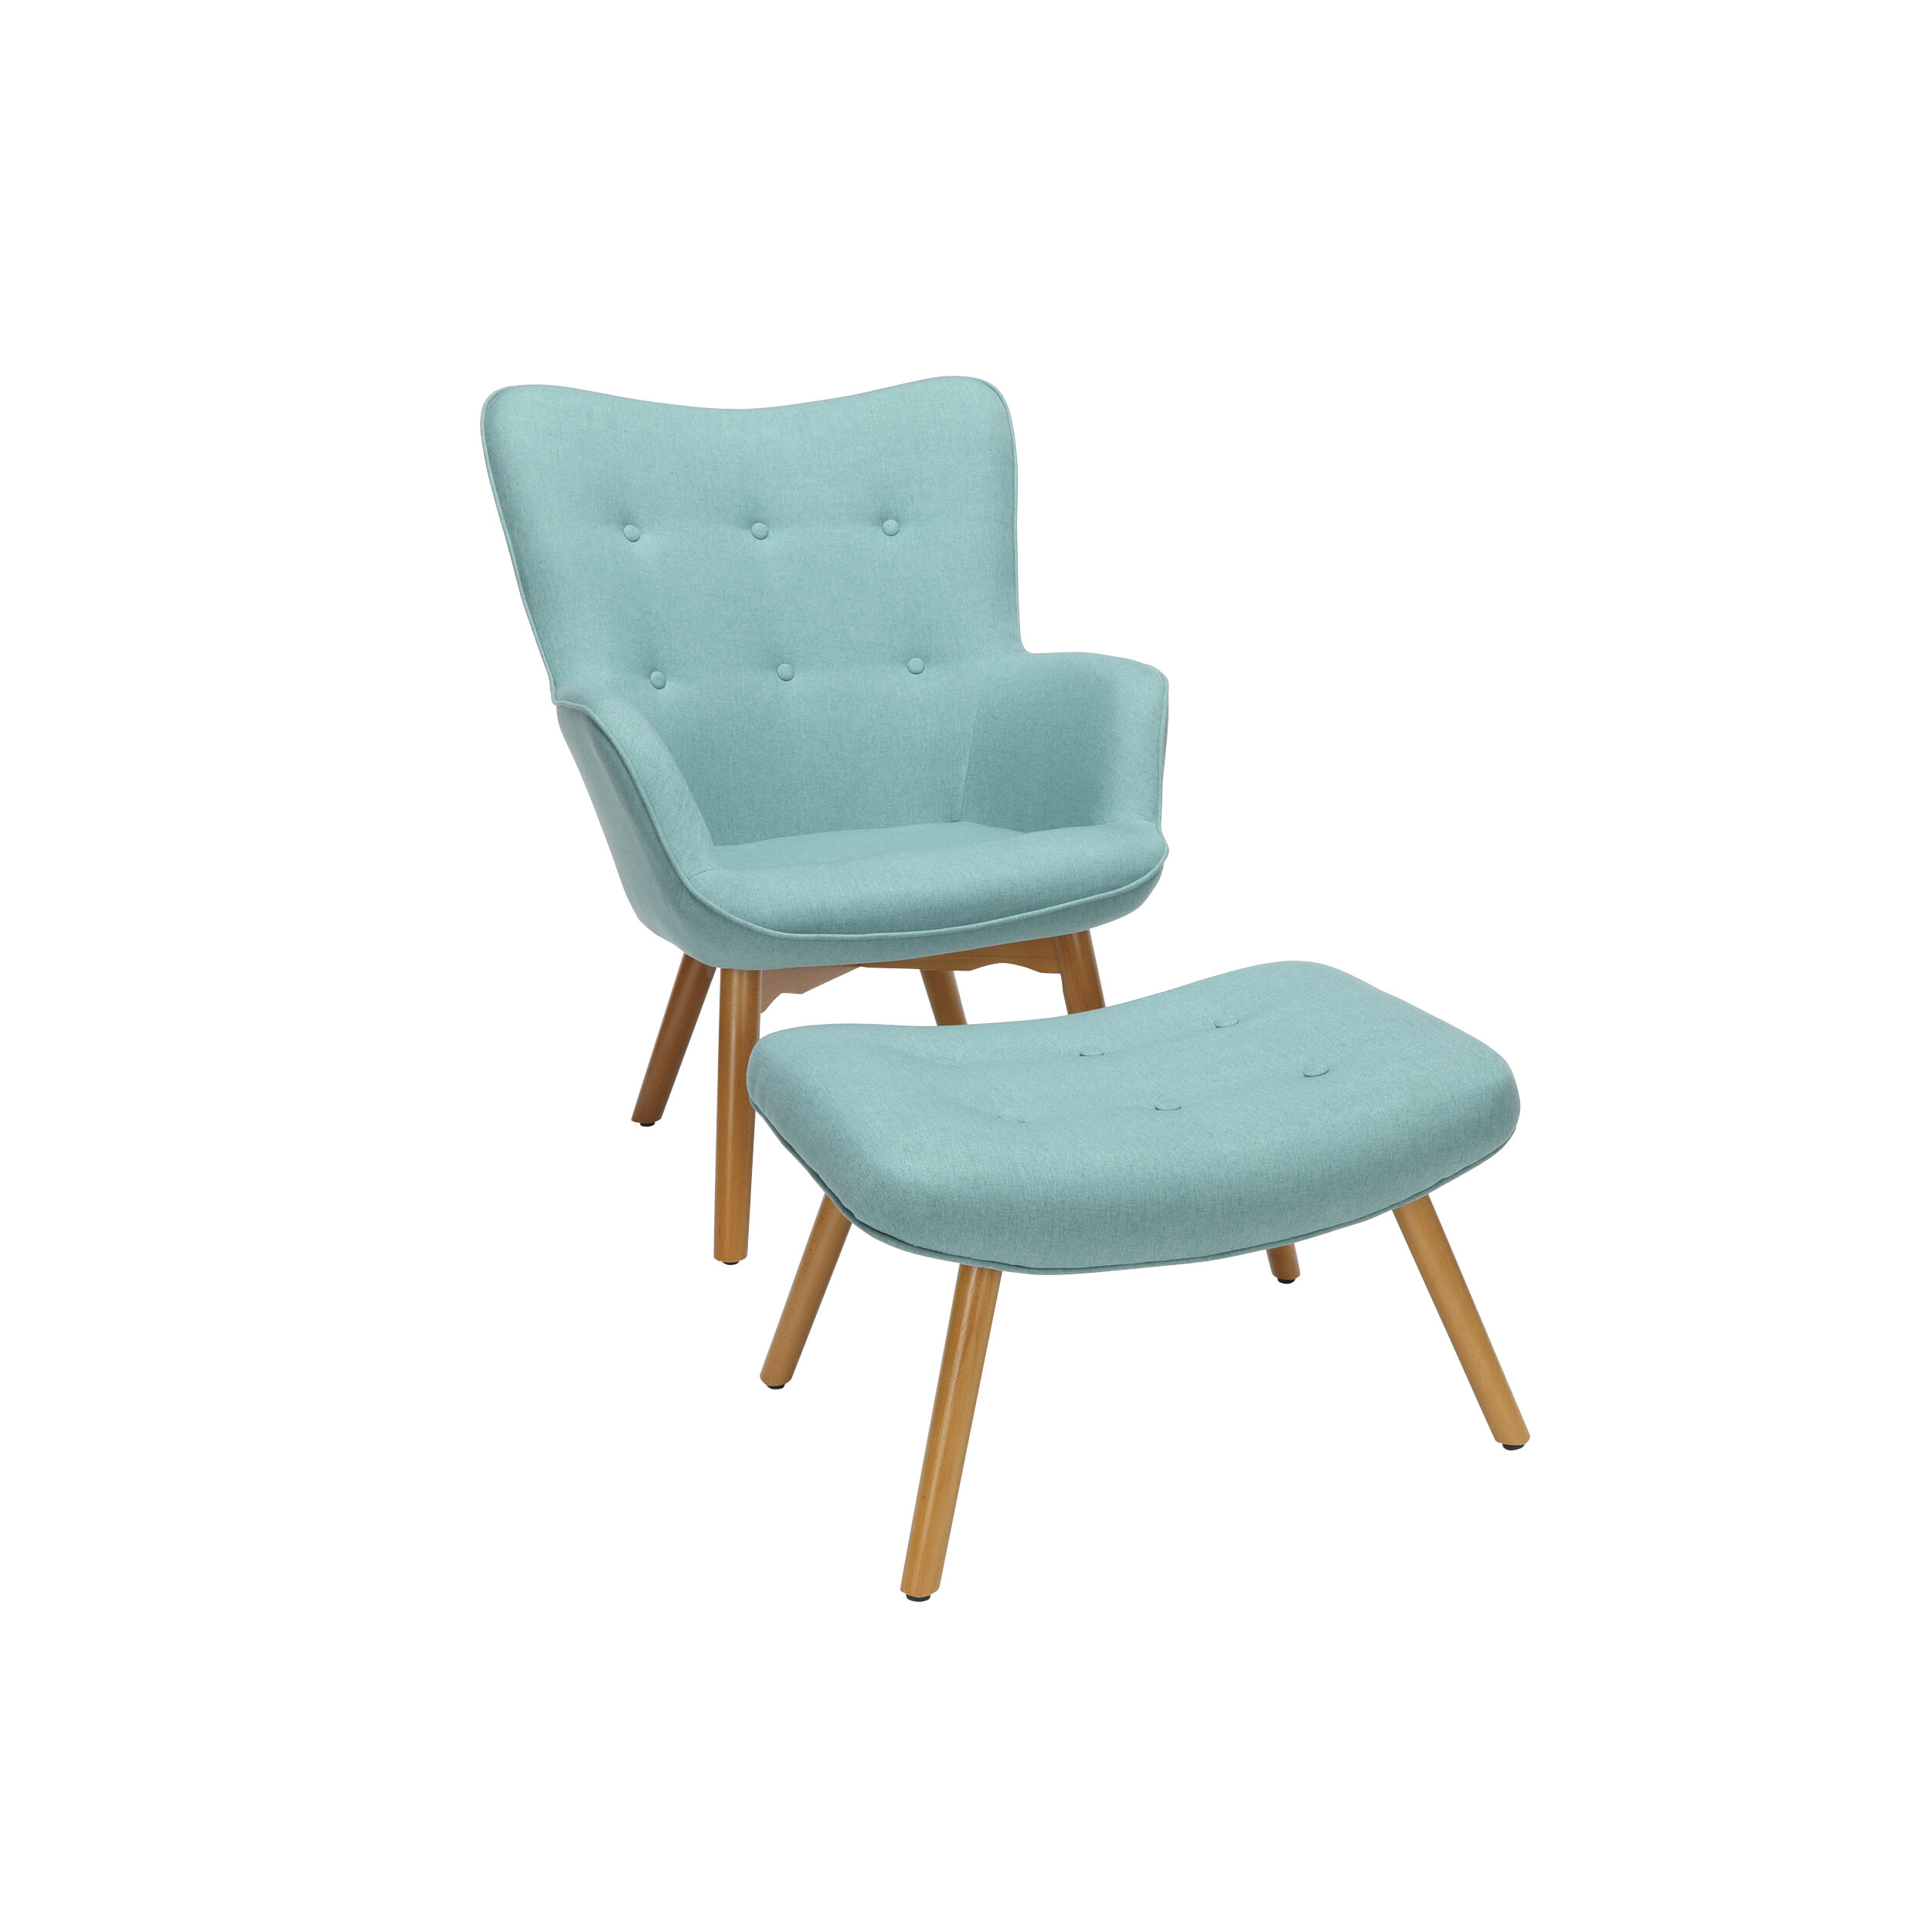 Fabulous Bello Mid Century Modern Lounge Chair And Ottoman Ibusinesslaw Wood Chair Design Ideas Ibusinesslaworg